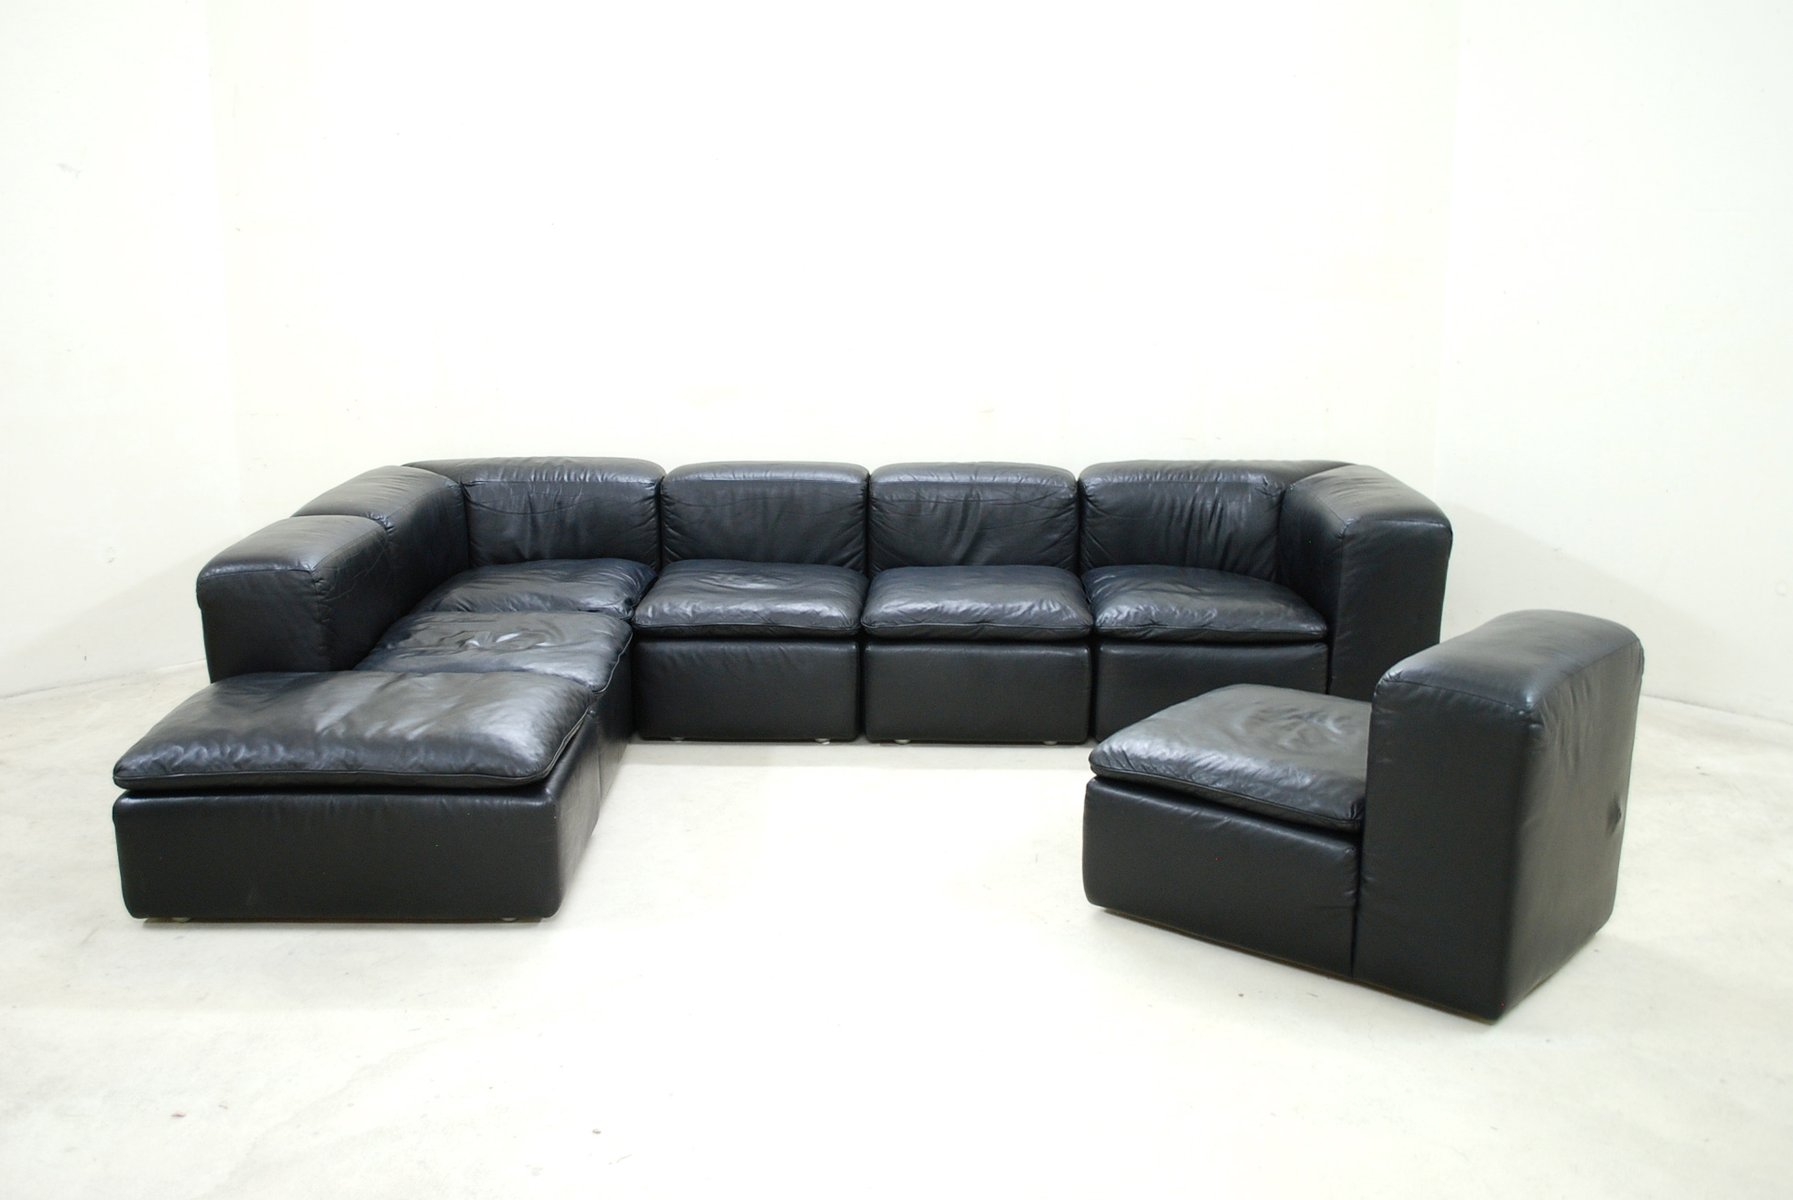 Modular black cube design wk 550 leather sofa by ernst martin dettinger for wk m bel for sale at - Mobel martin couch ...